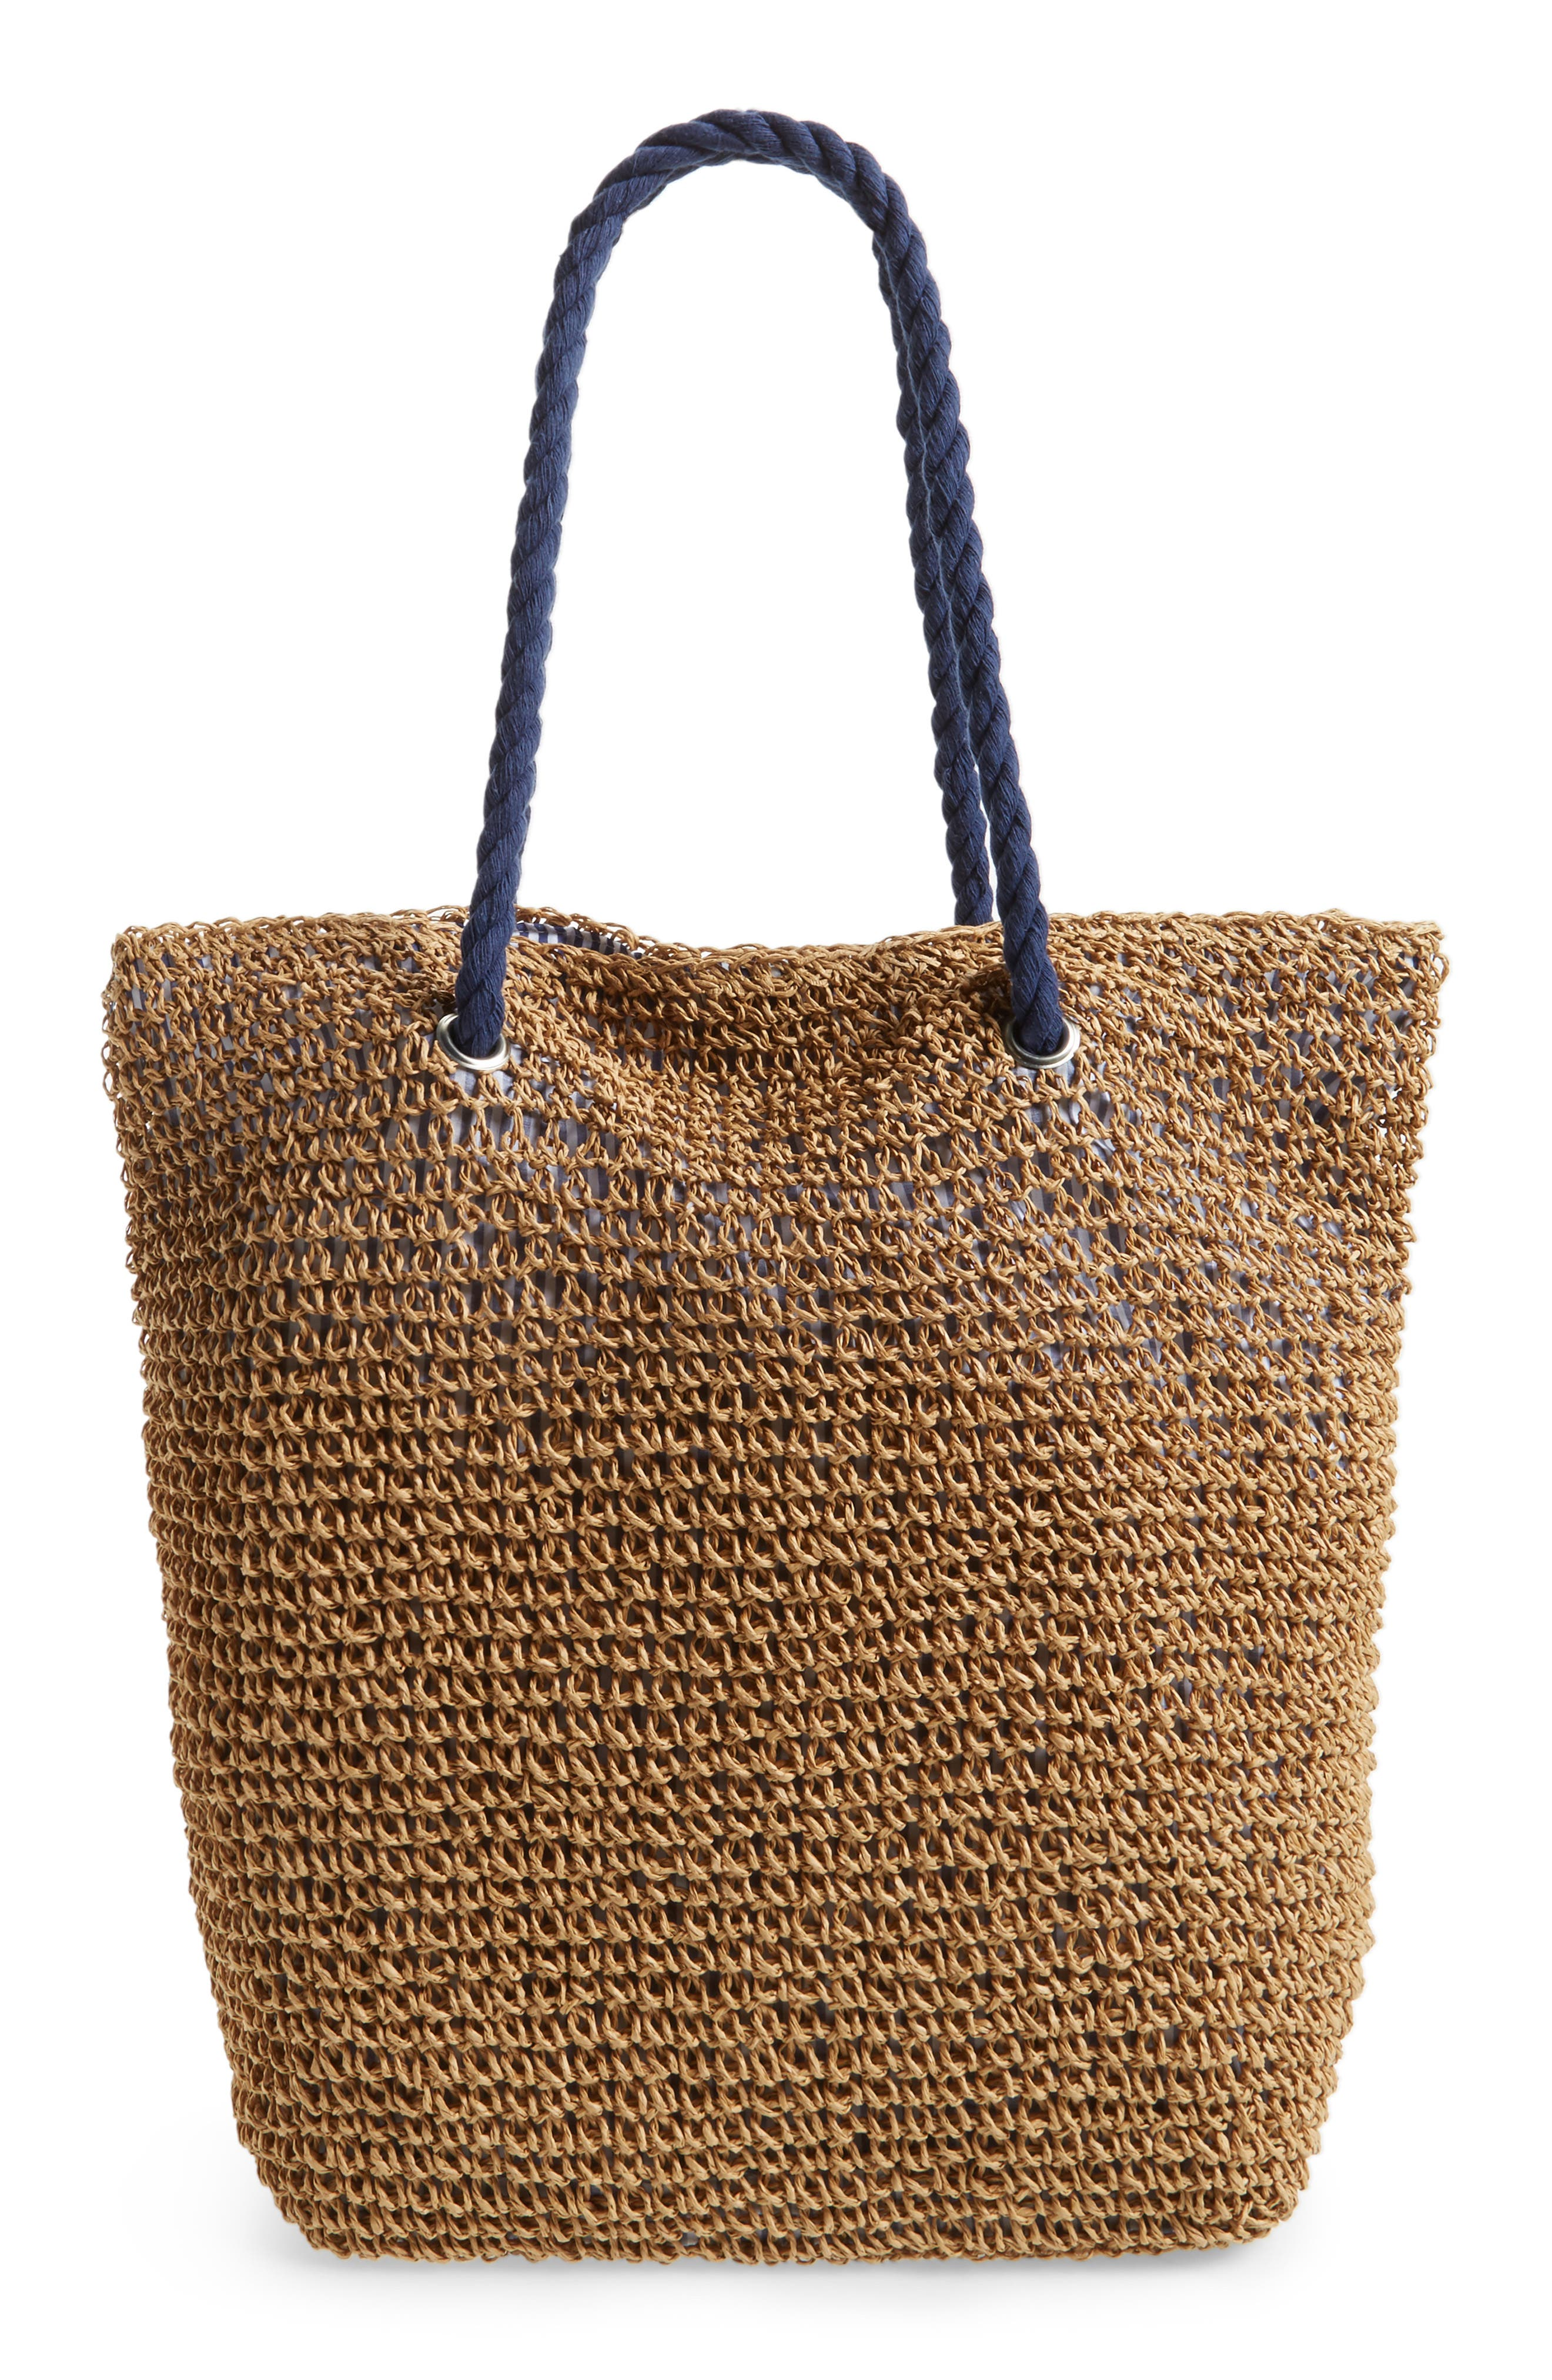 Rope & Straw Tote,                         Main,                         color, 200